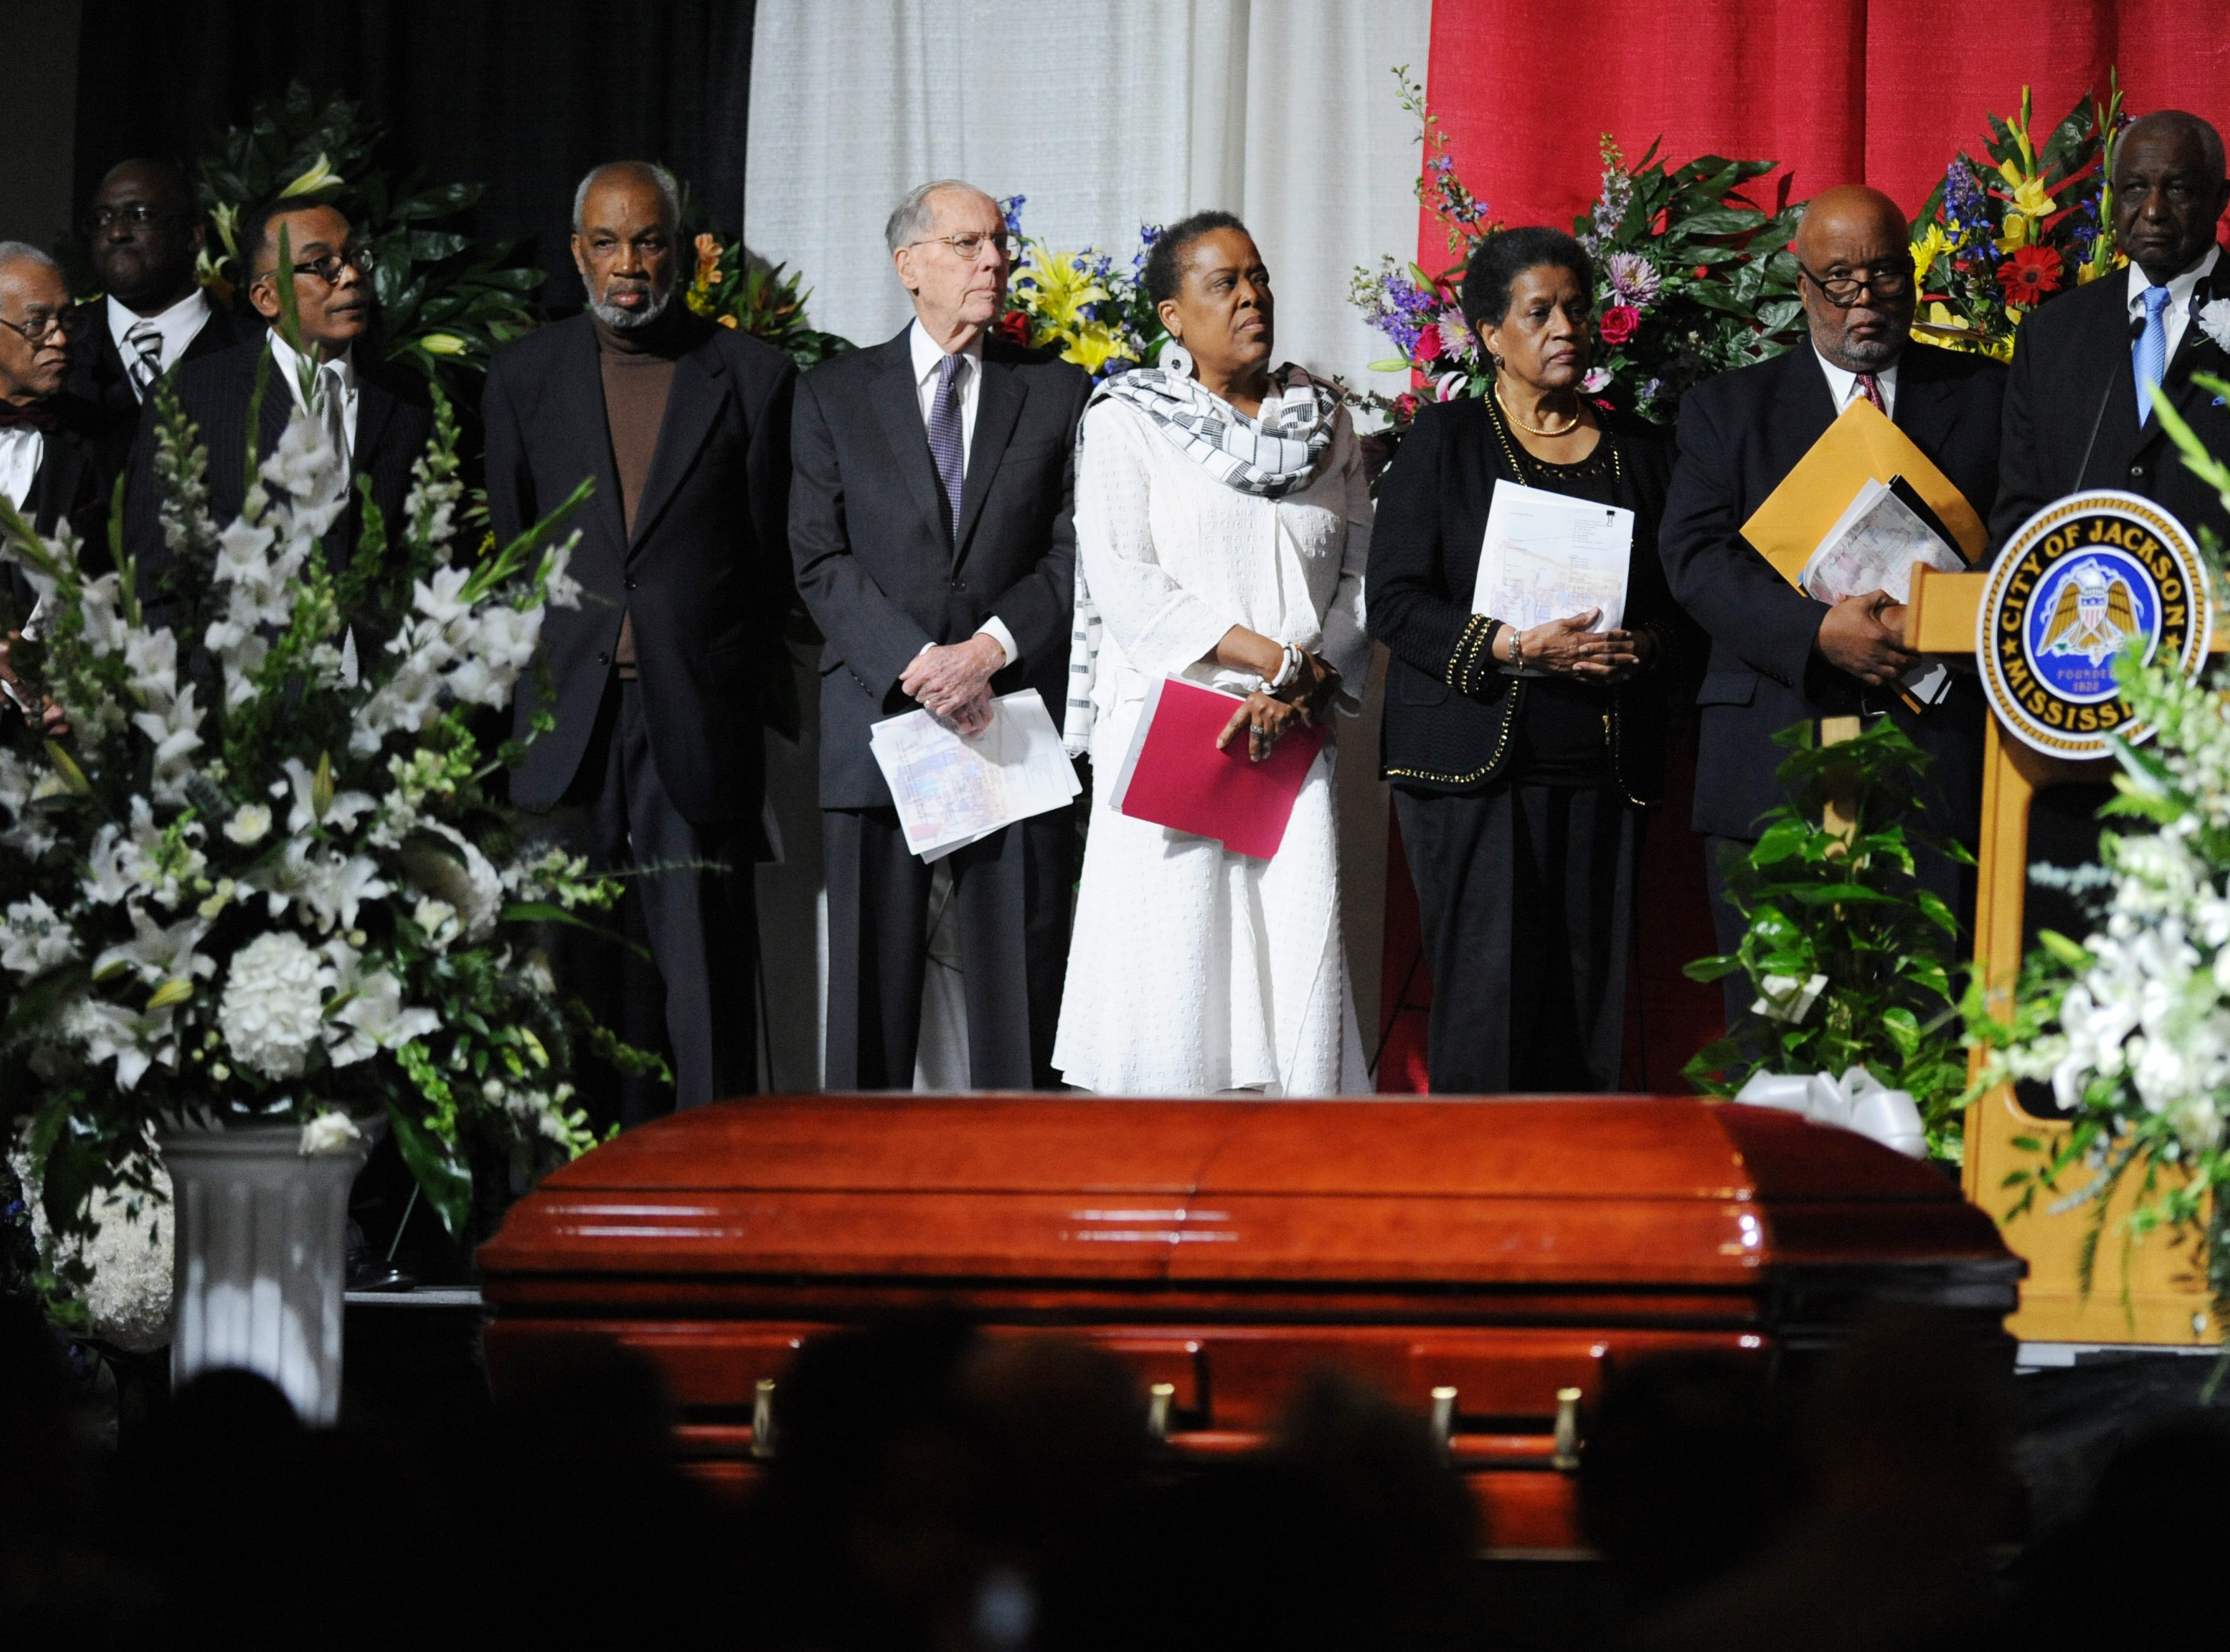 Speakers at the service for Jackson Mayor Chokwe Lumumba, including politicians and prominent figures of the civil rights movement, lauded the late mayor's accomplishments and urged Jackson to follow through on his plans.